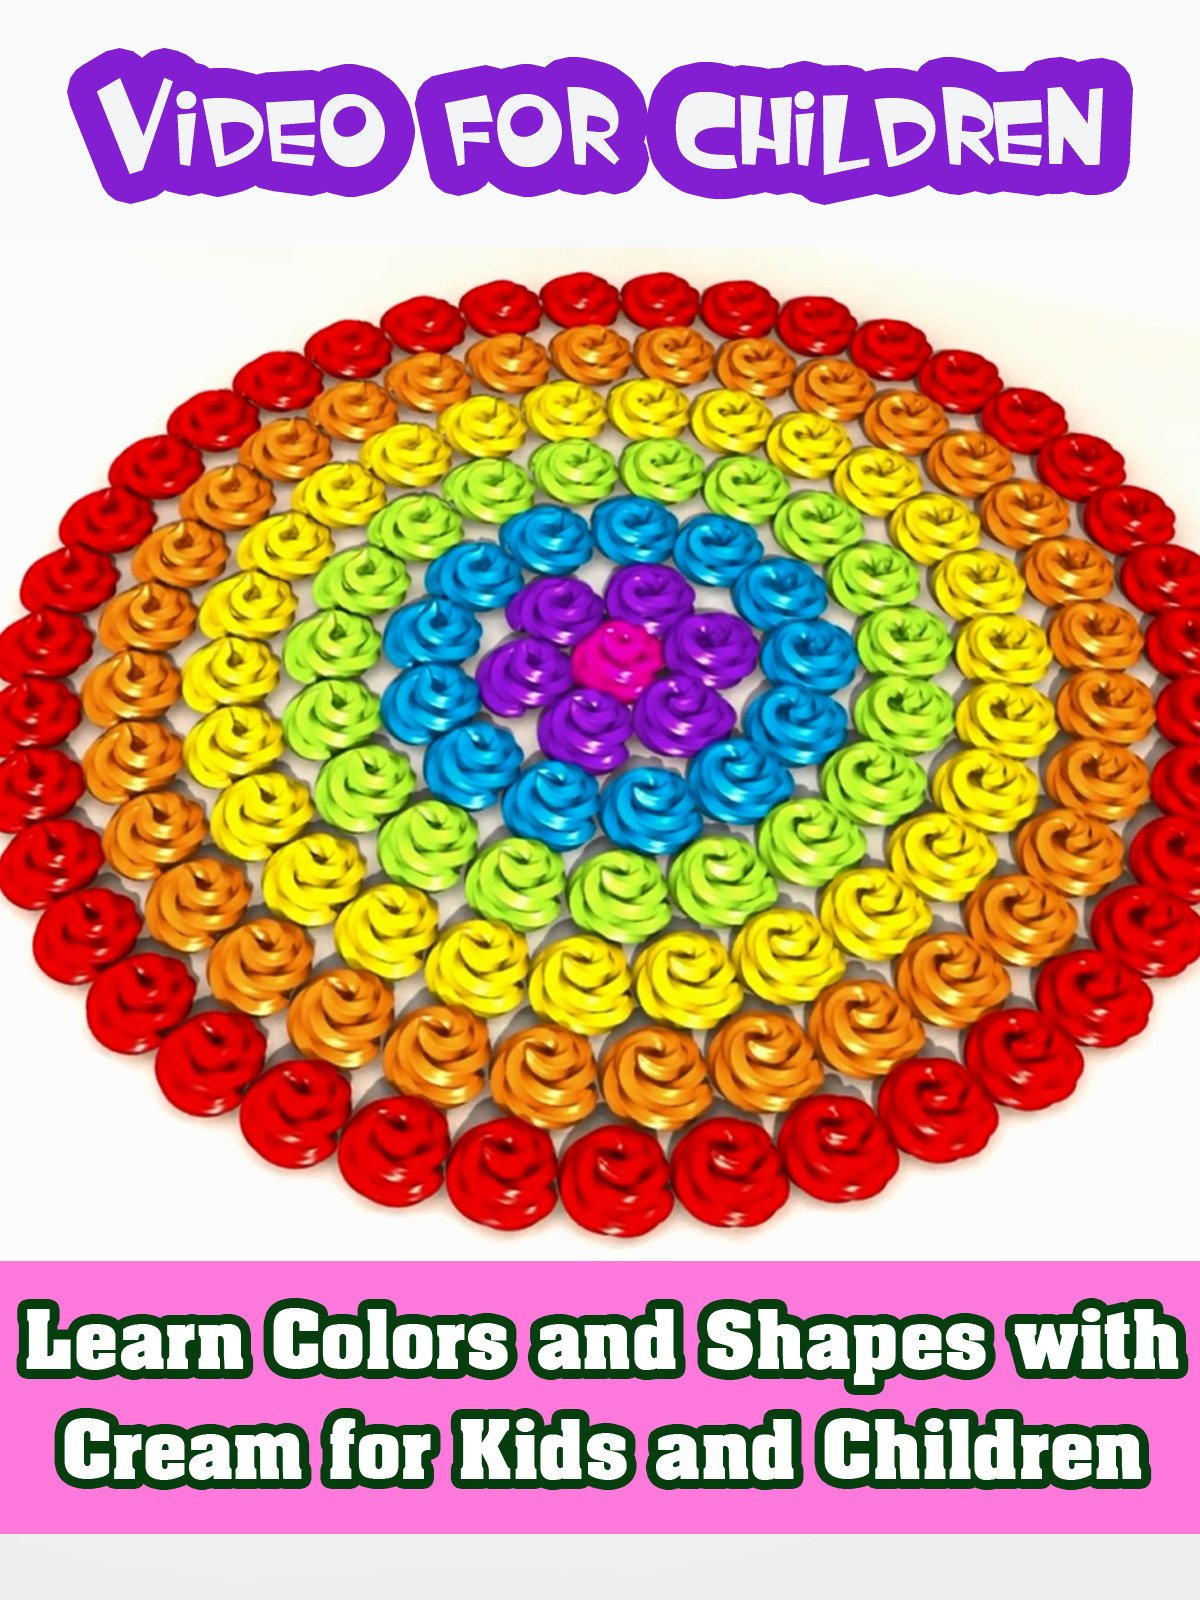 Learn Colors and Shapes with Cream for Kids and Children